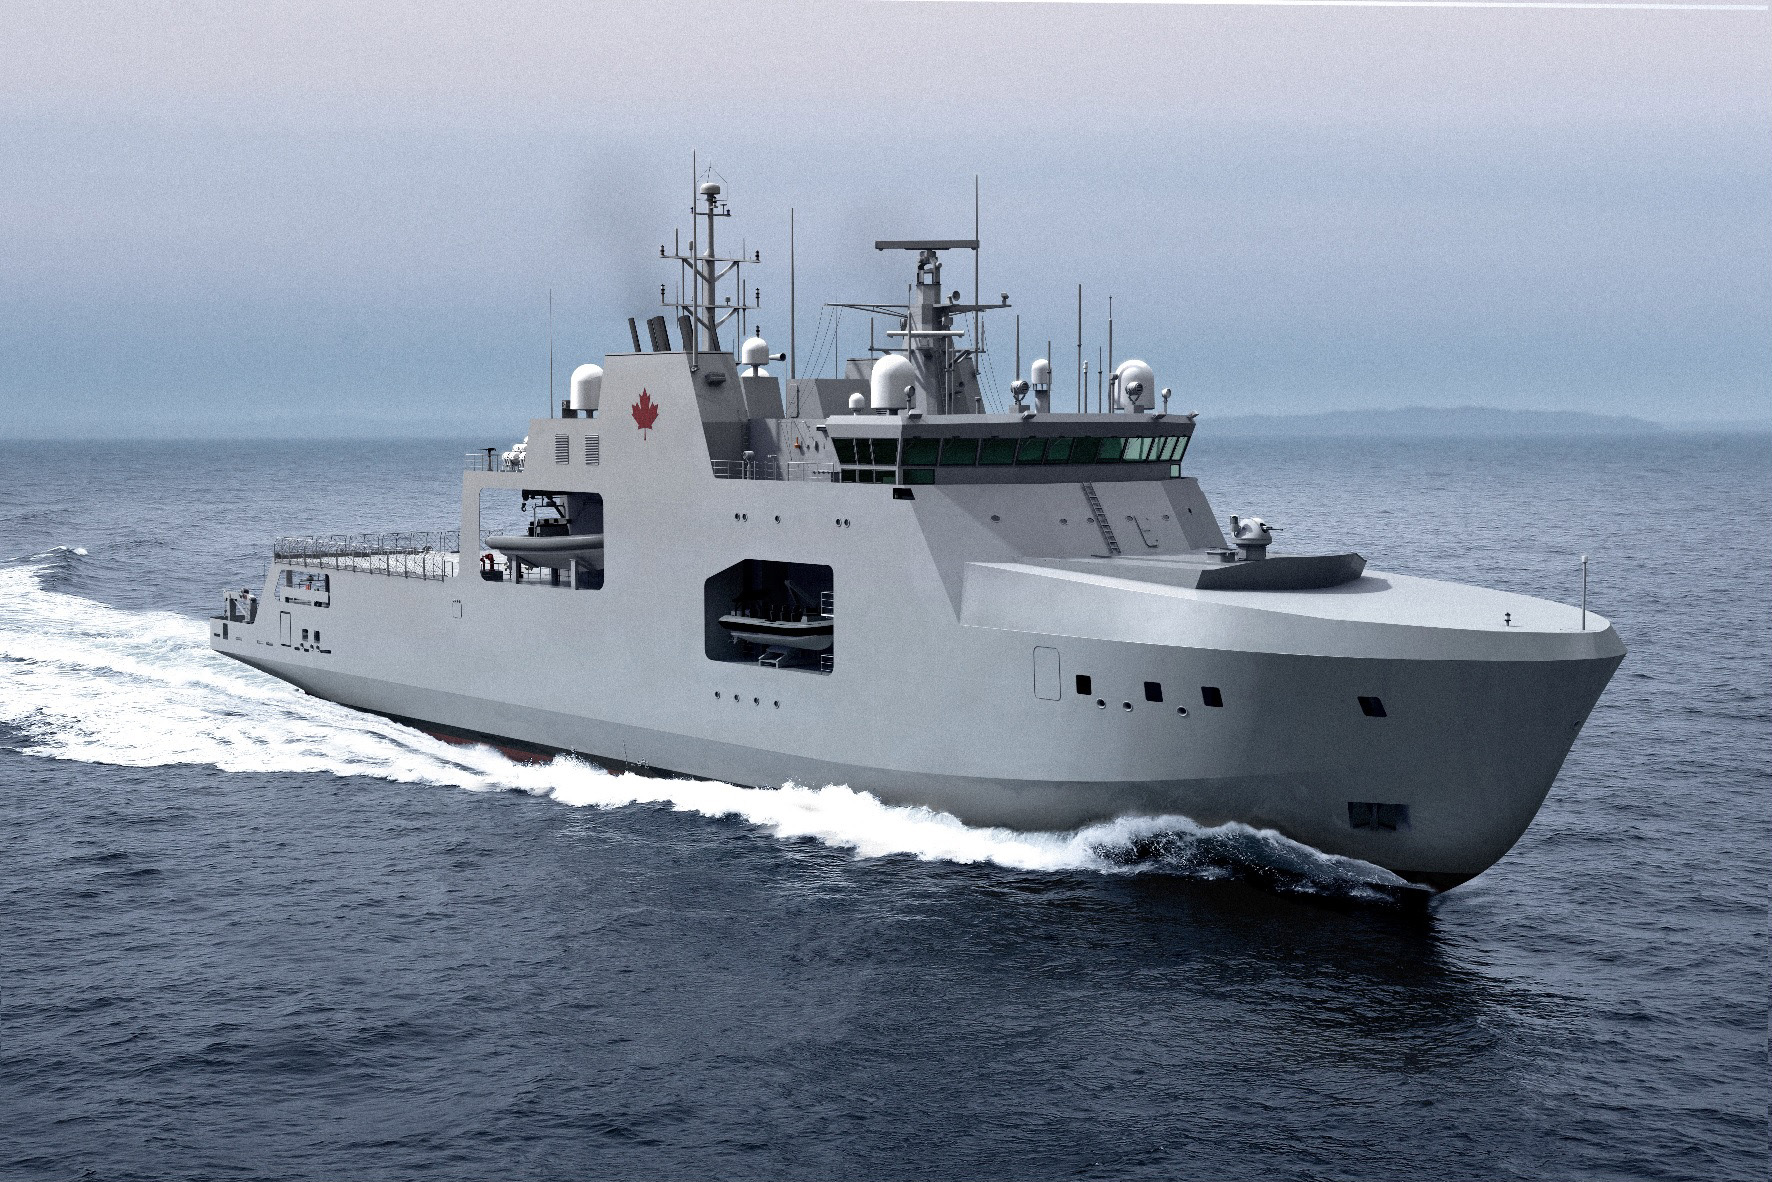 Ice Capable Canadian Coast Guard Ships Could Be Both A Blessing And A Curse Expert Rci English